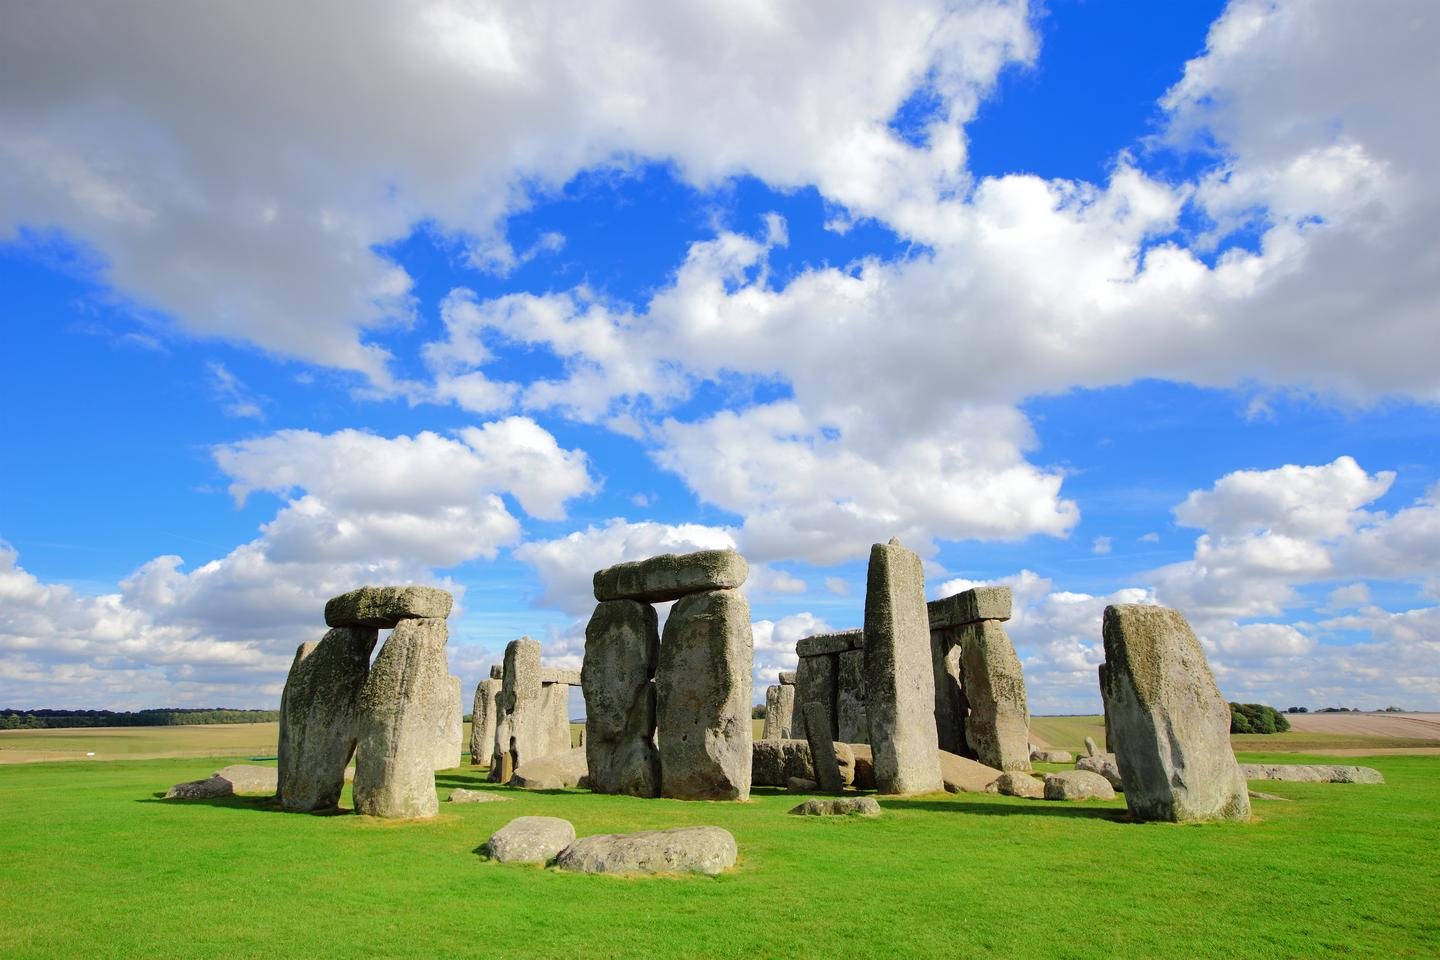 Stonehenge might incorporate bluestones previously used to build an earlier stone circle in Wales